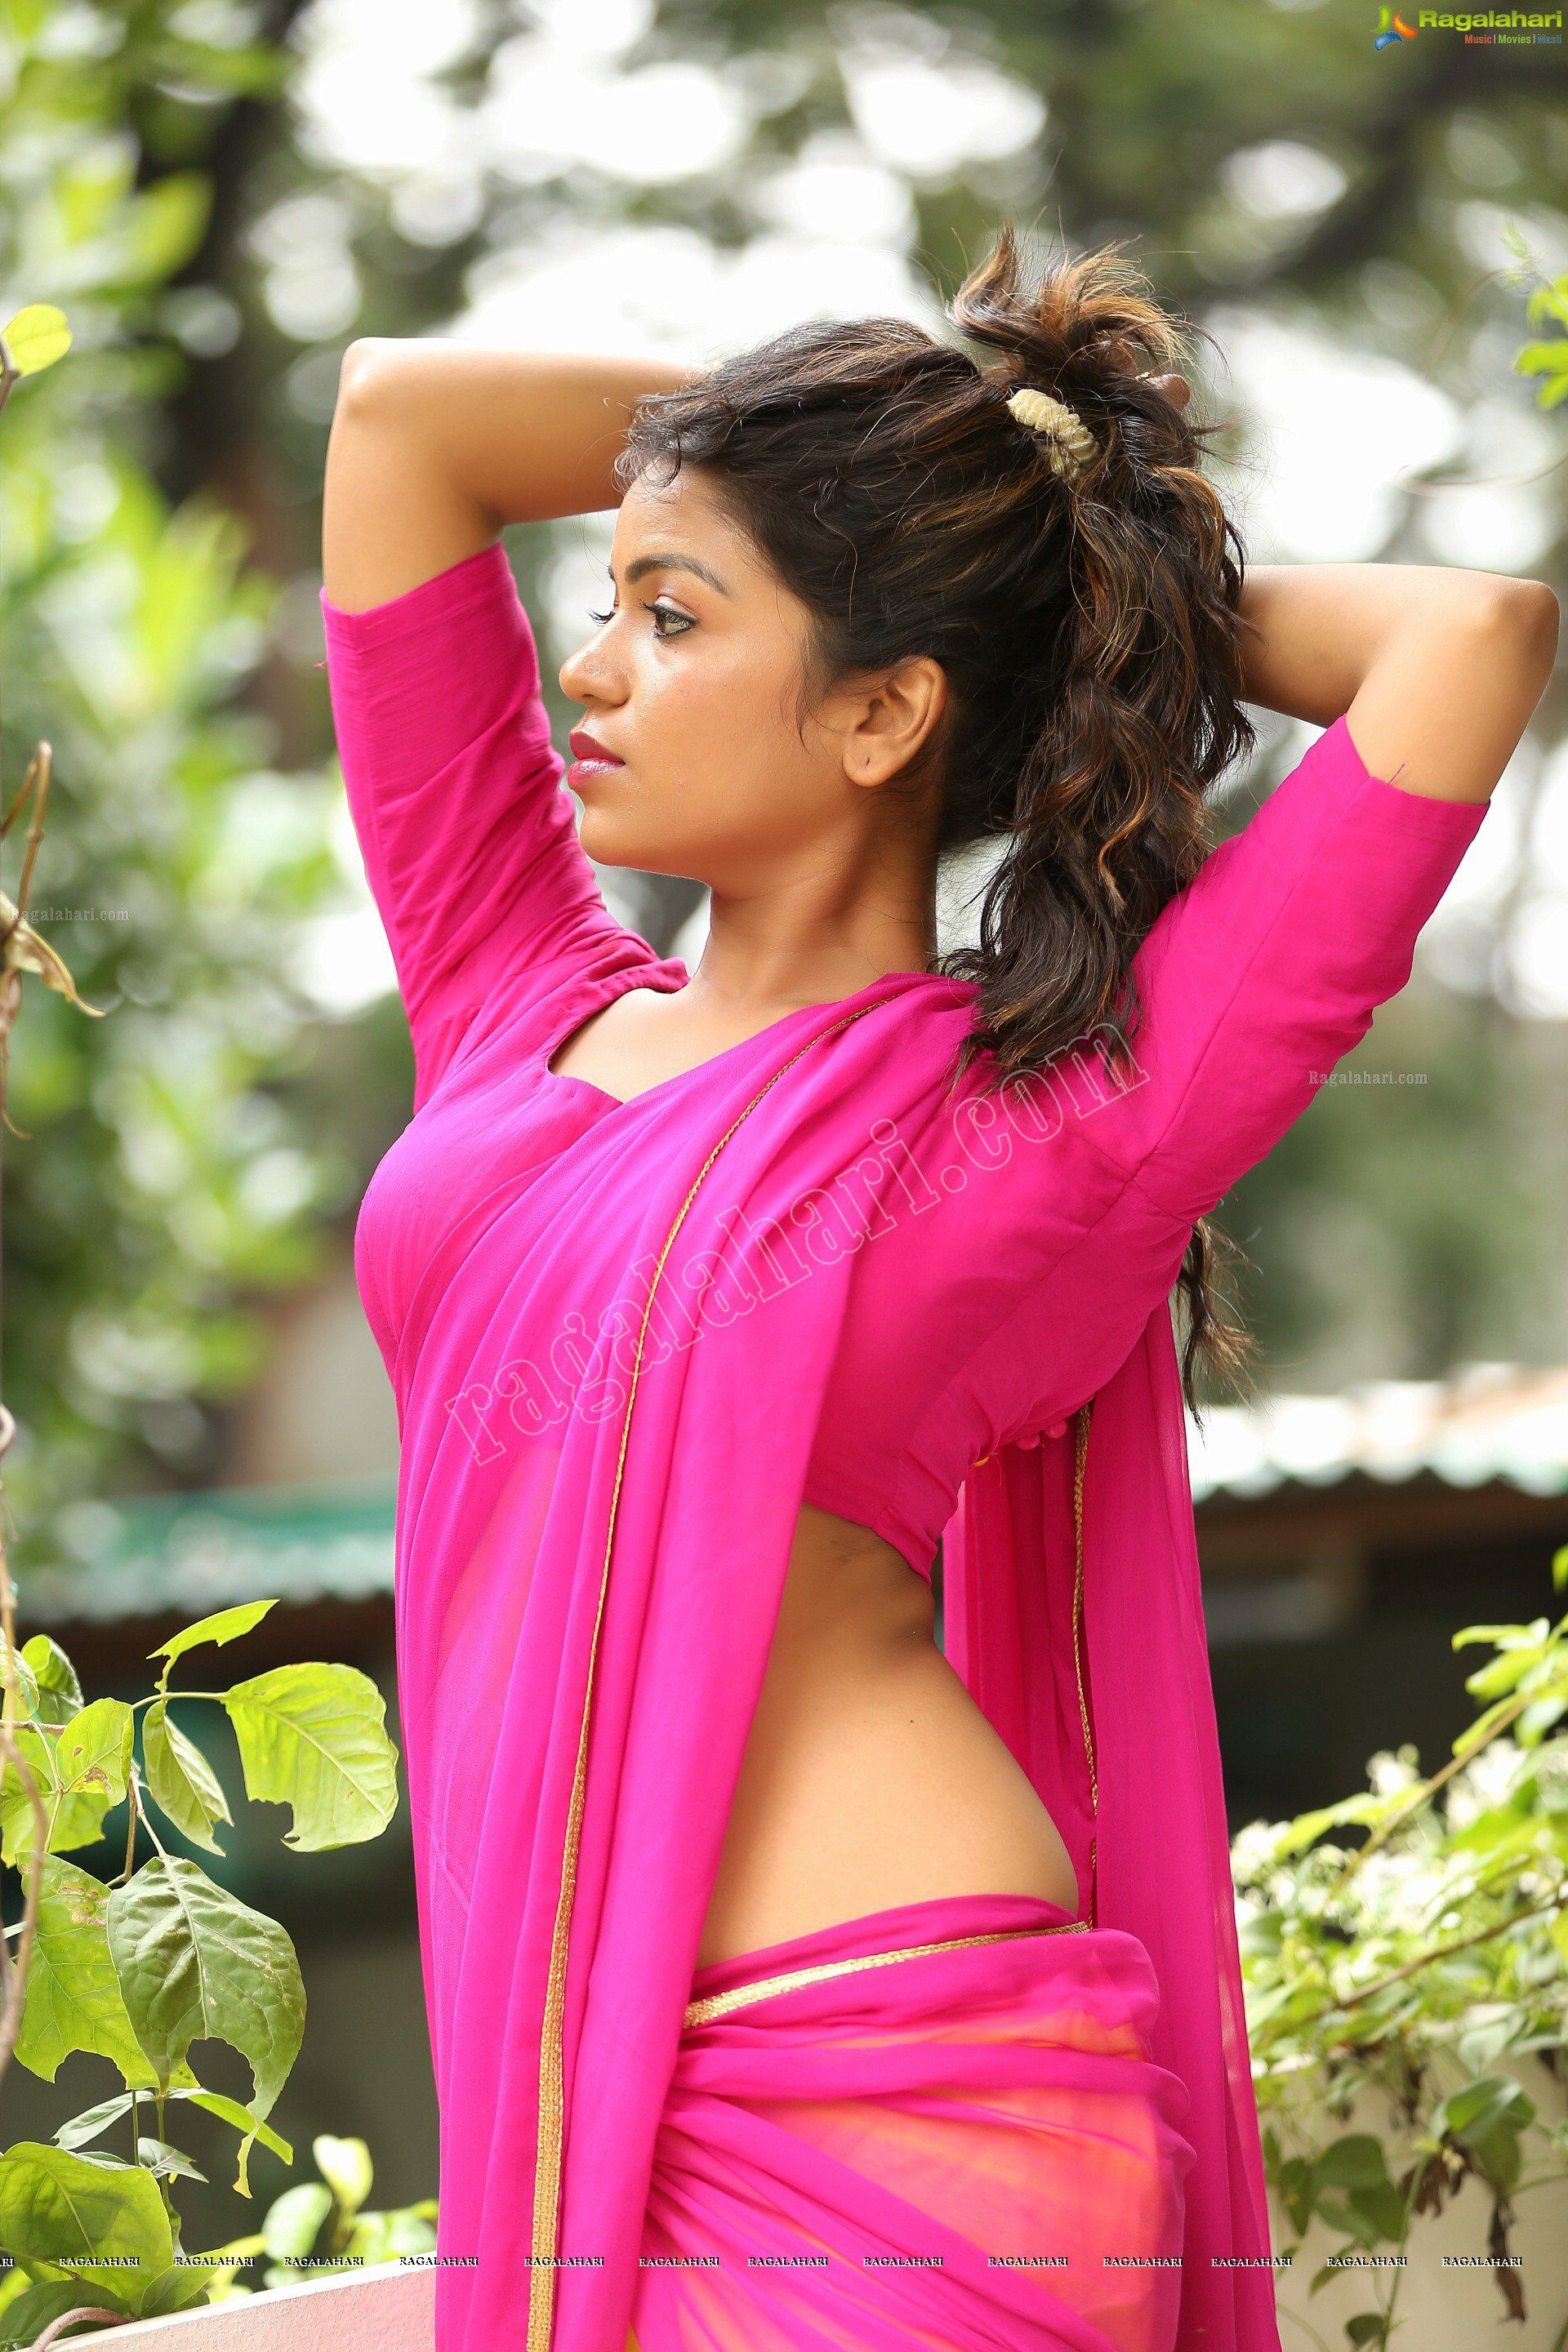 fitness-sexnayanthara-hot-in-saree-increase